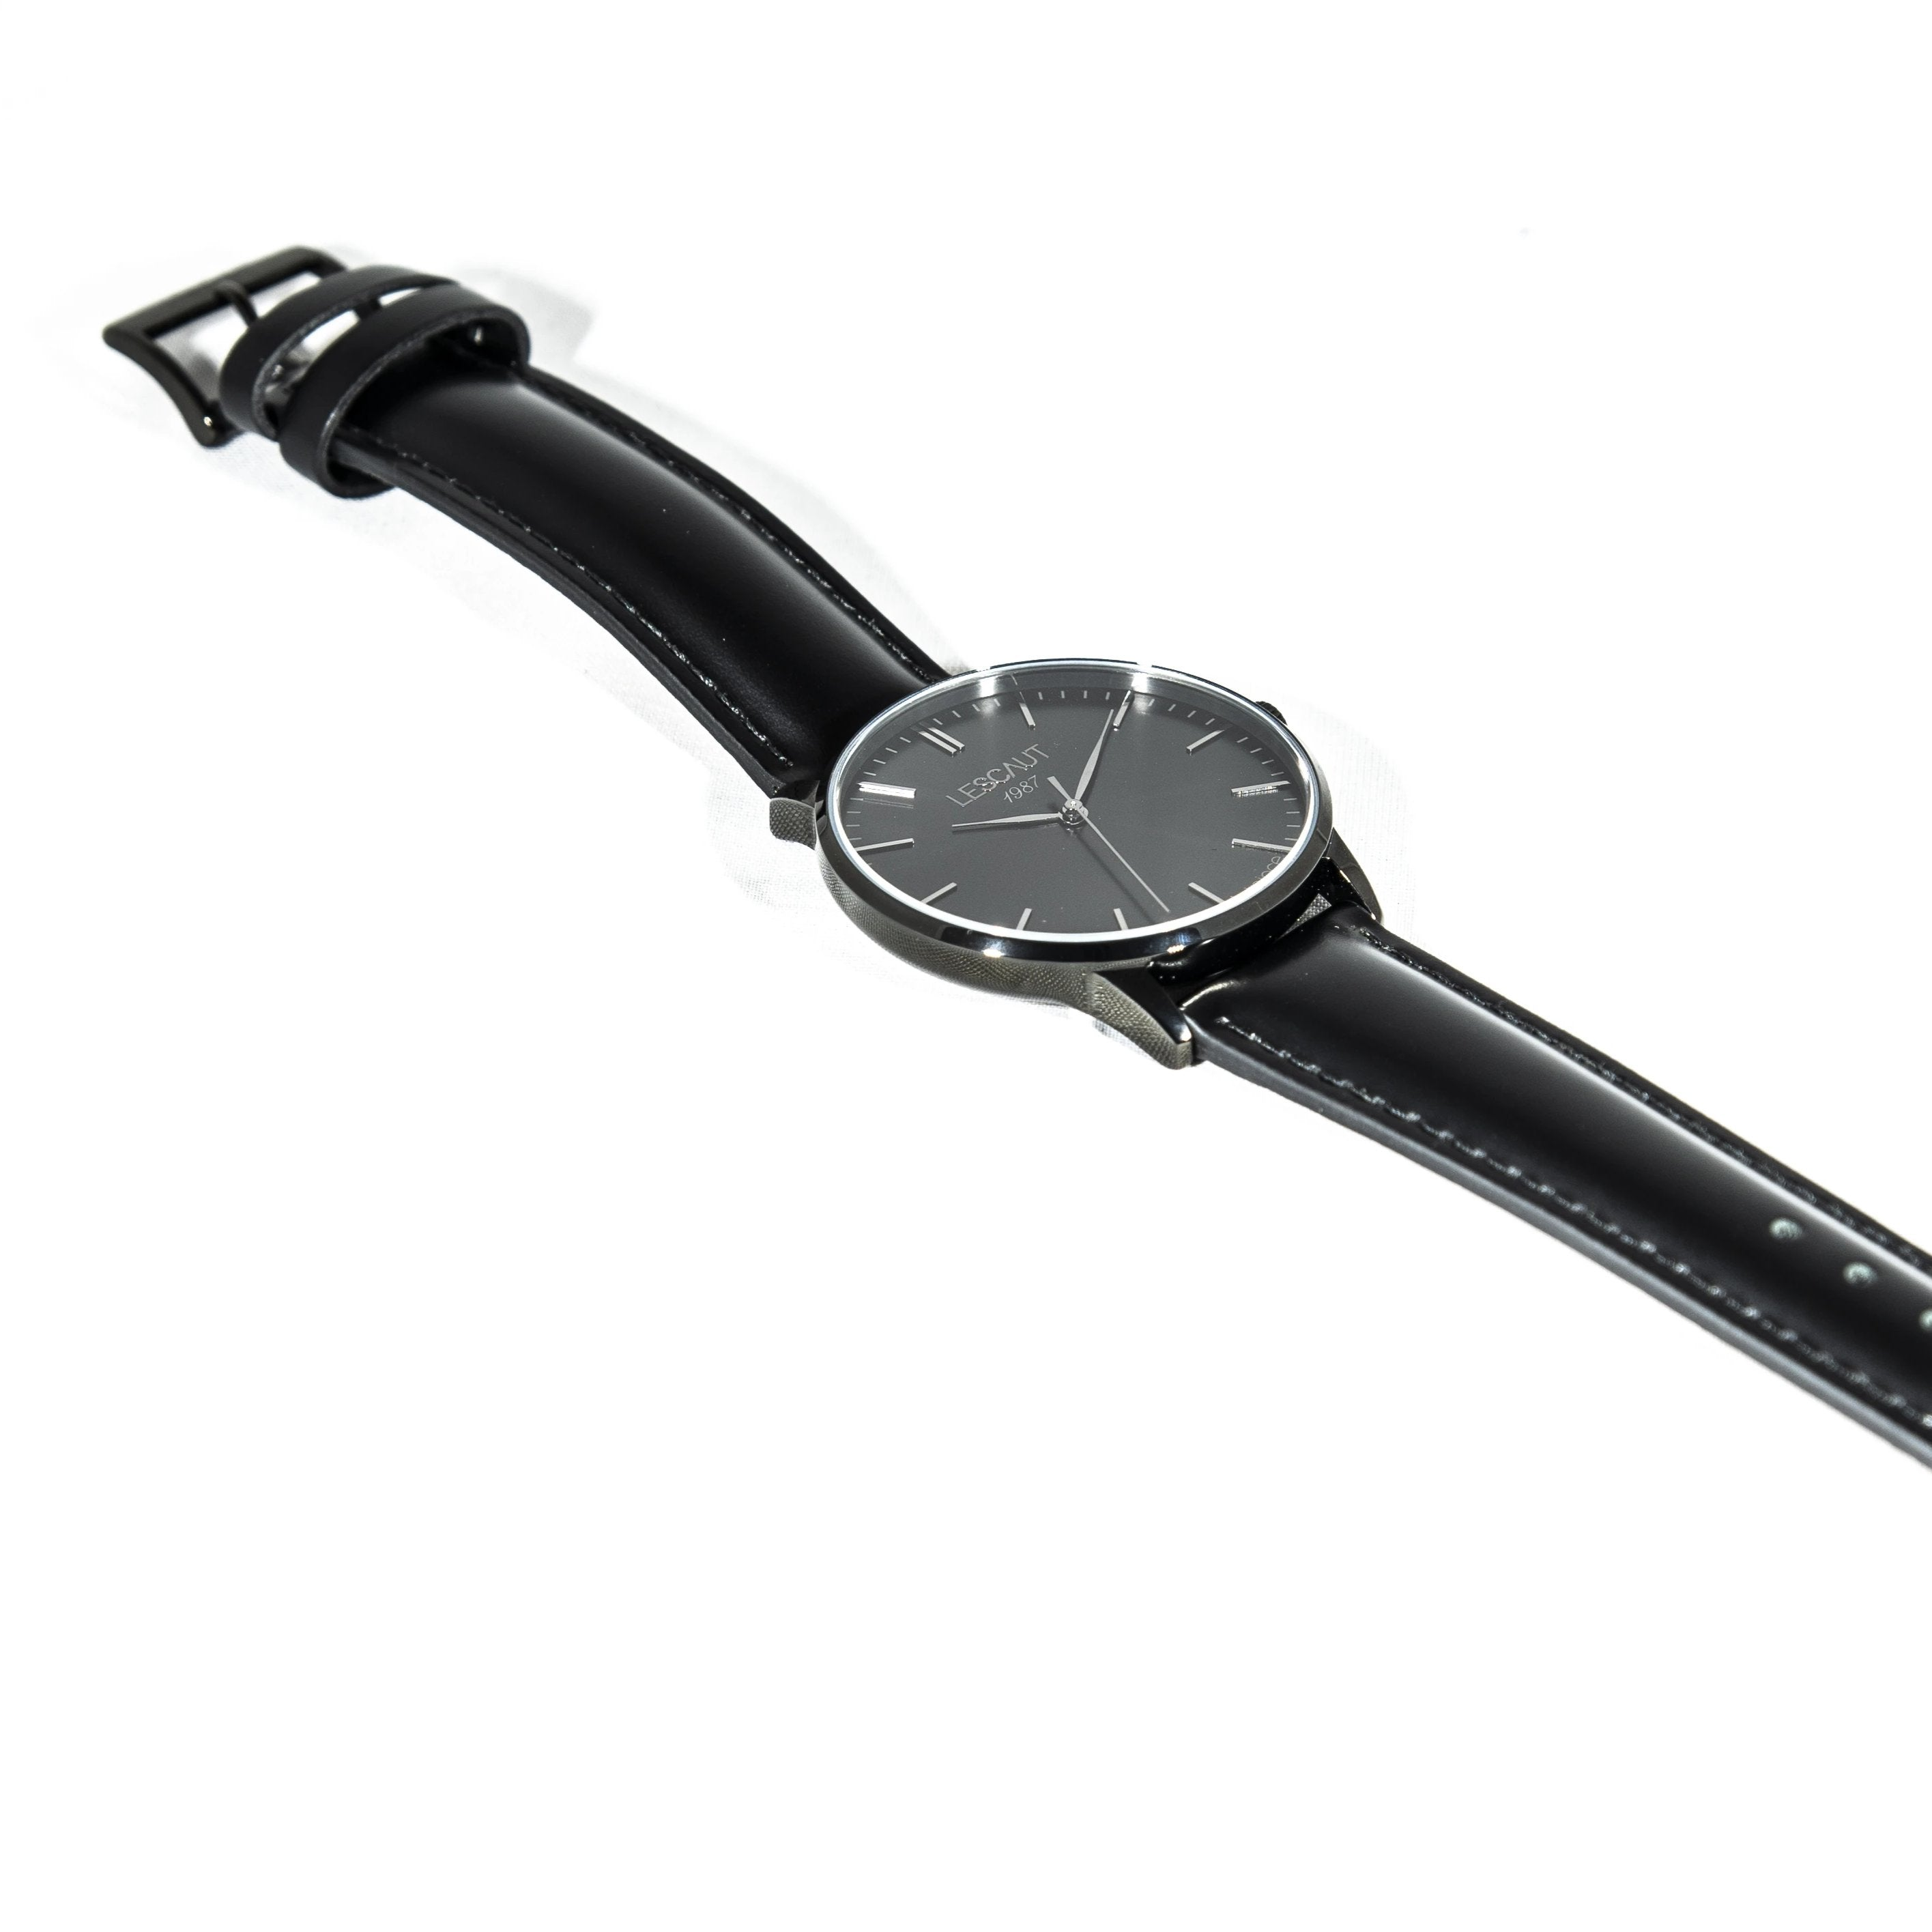 LESCAUT Black Hand horloge zwart staal kast zwarte wijzerplaat zwart leder bandje Watch black steel case black dial black leather strap